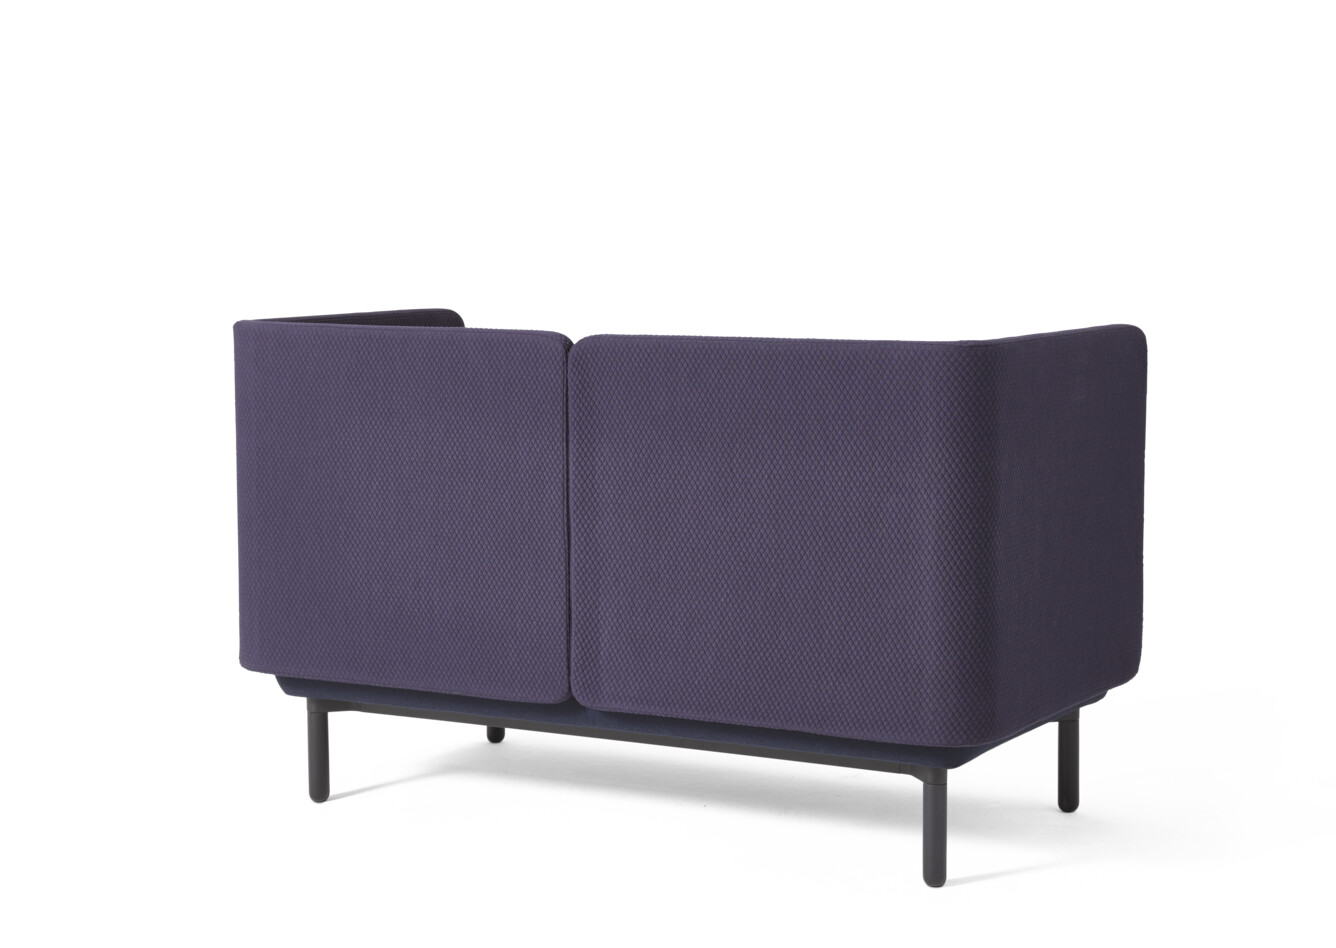 Royal Ahrend Charge sofa with black frame and upholstered in blue rear left view